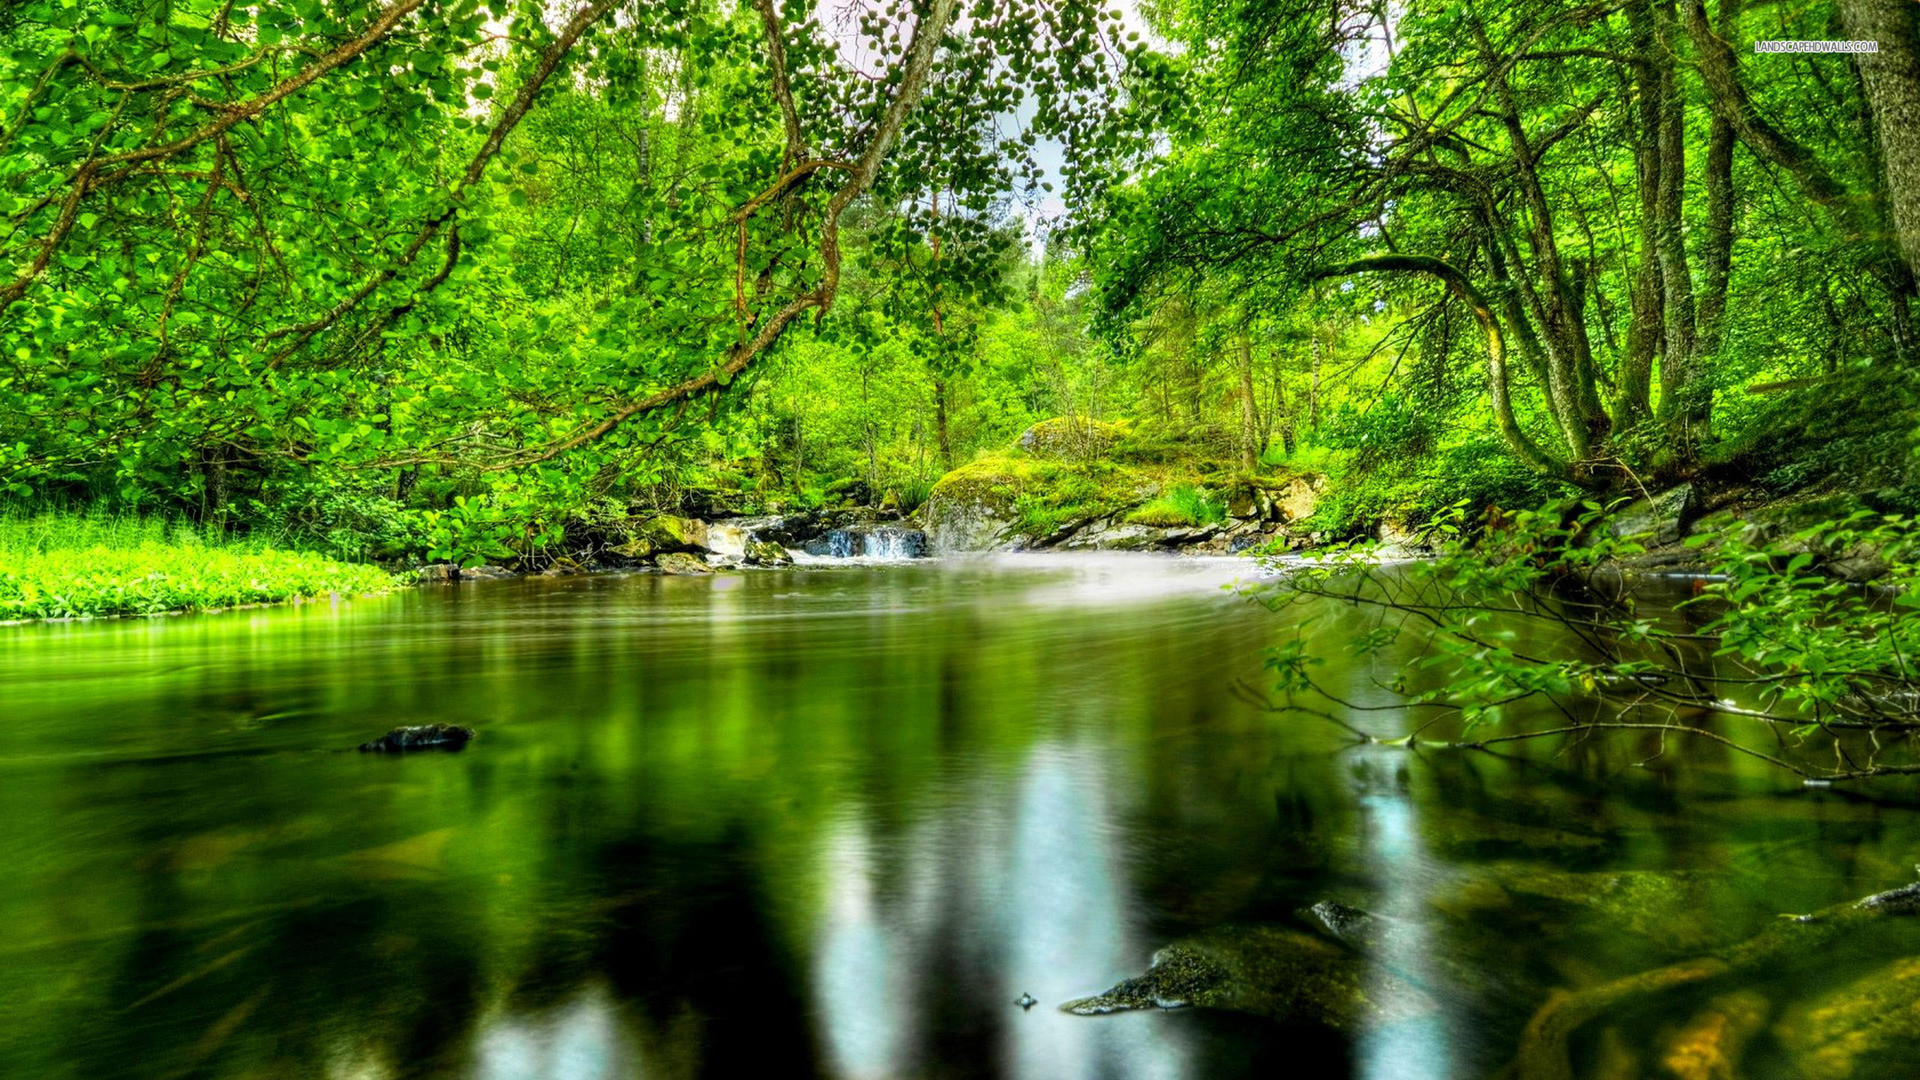 hd-forest-river-nature-wallpapers-1920×1080.jpg (JPEG Image